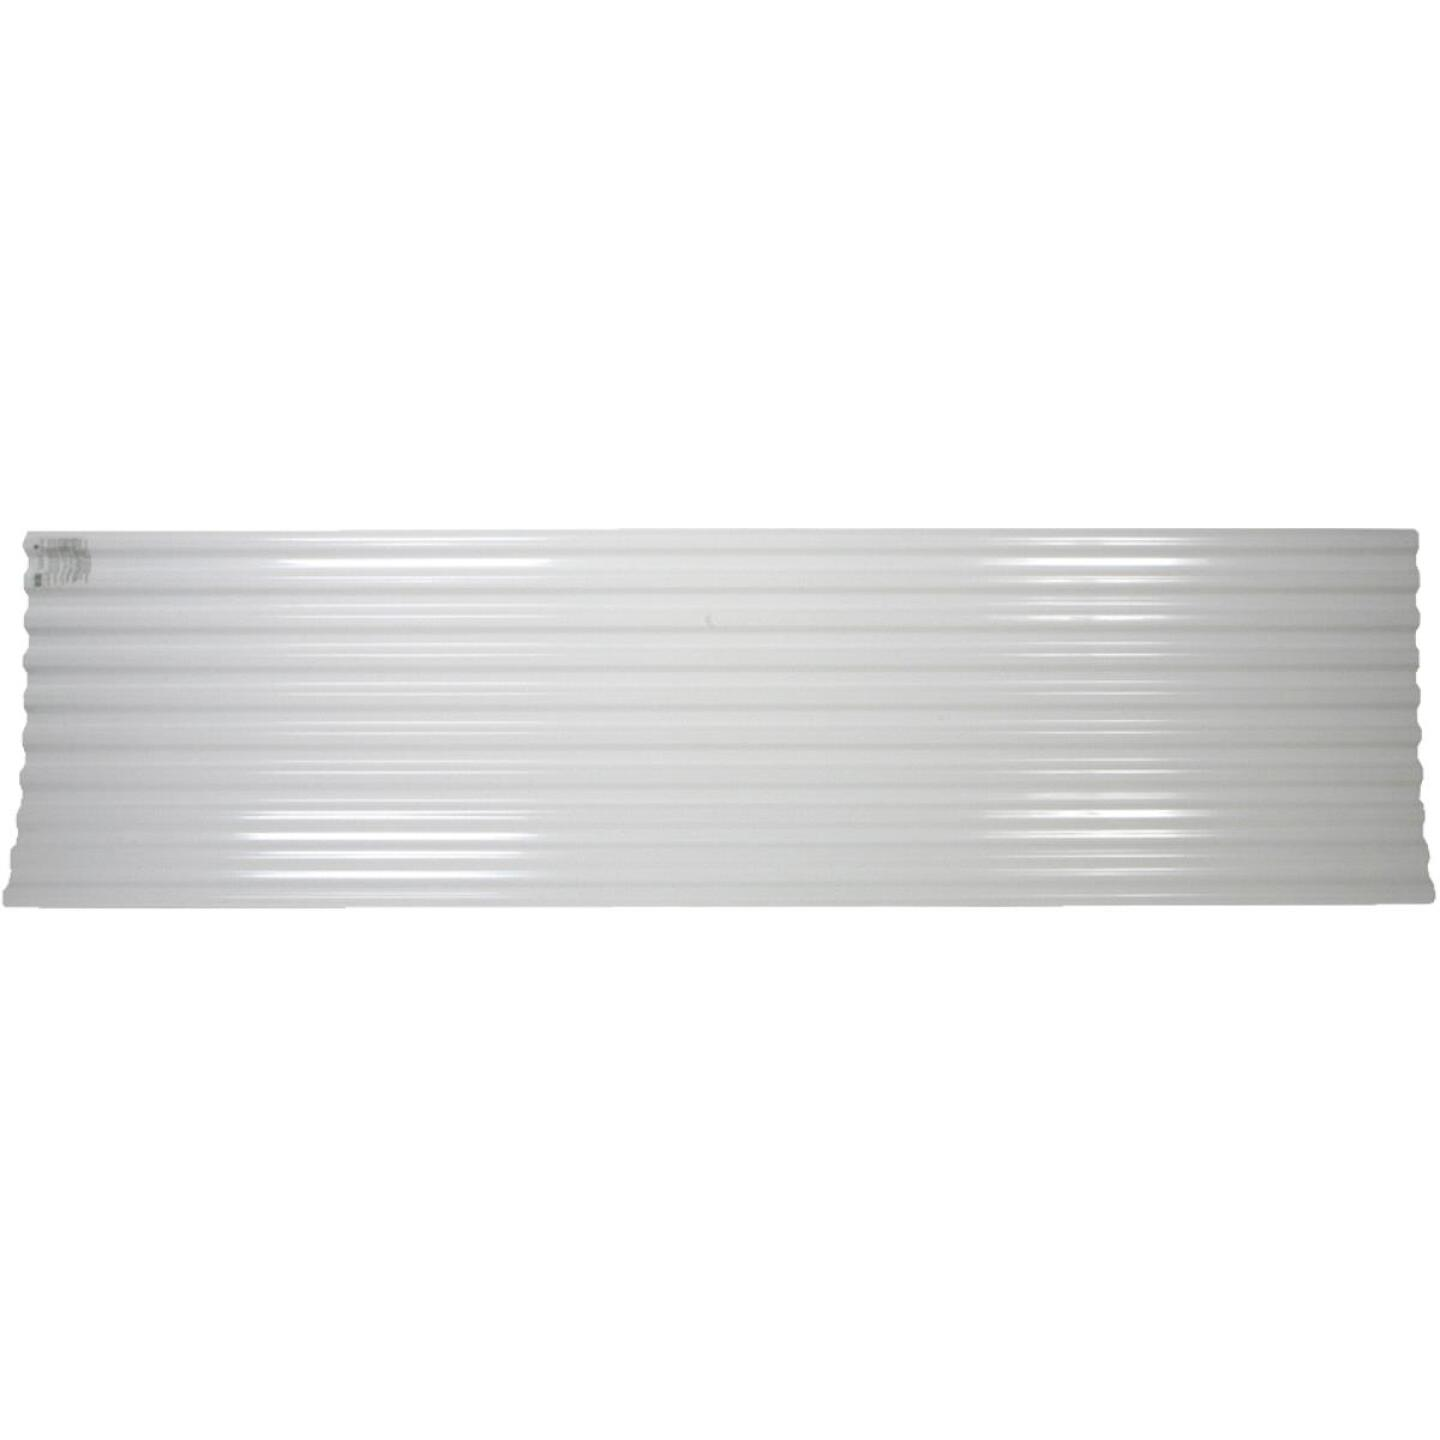 Tuftex UltraVinyl 26 In. x 10 Ft. Opaque White Square Wave Polycarb & Vinyl Corrugated Panels Image 4